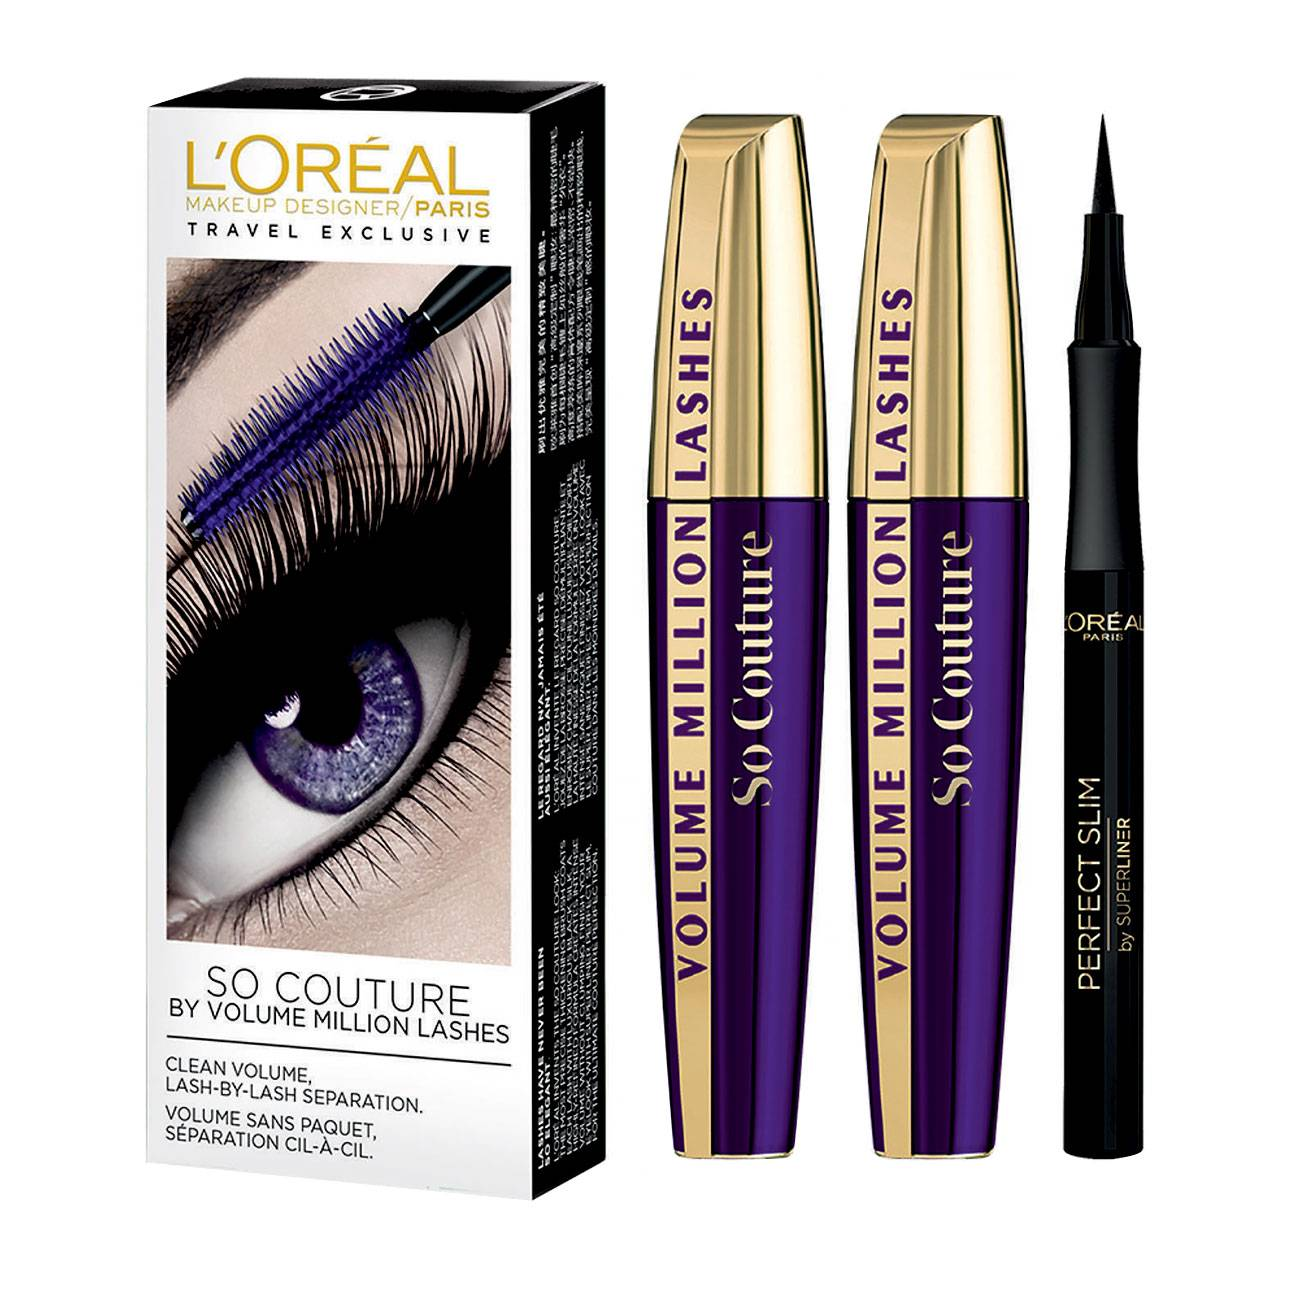 So Couture Volume Million Lashes Mascara Set